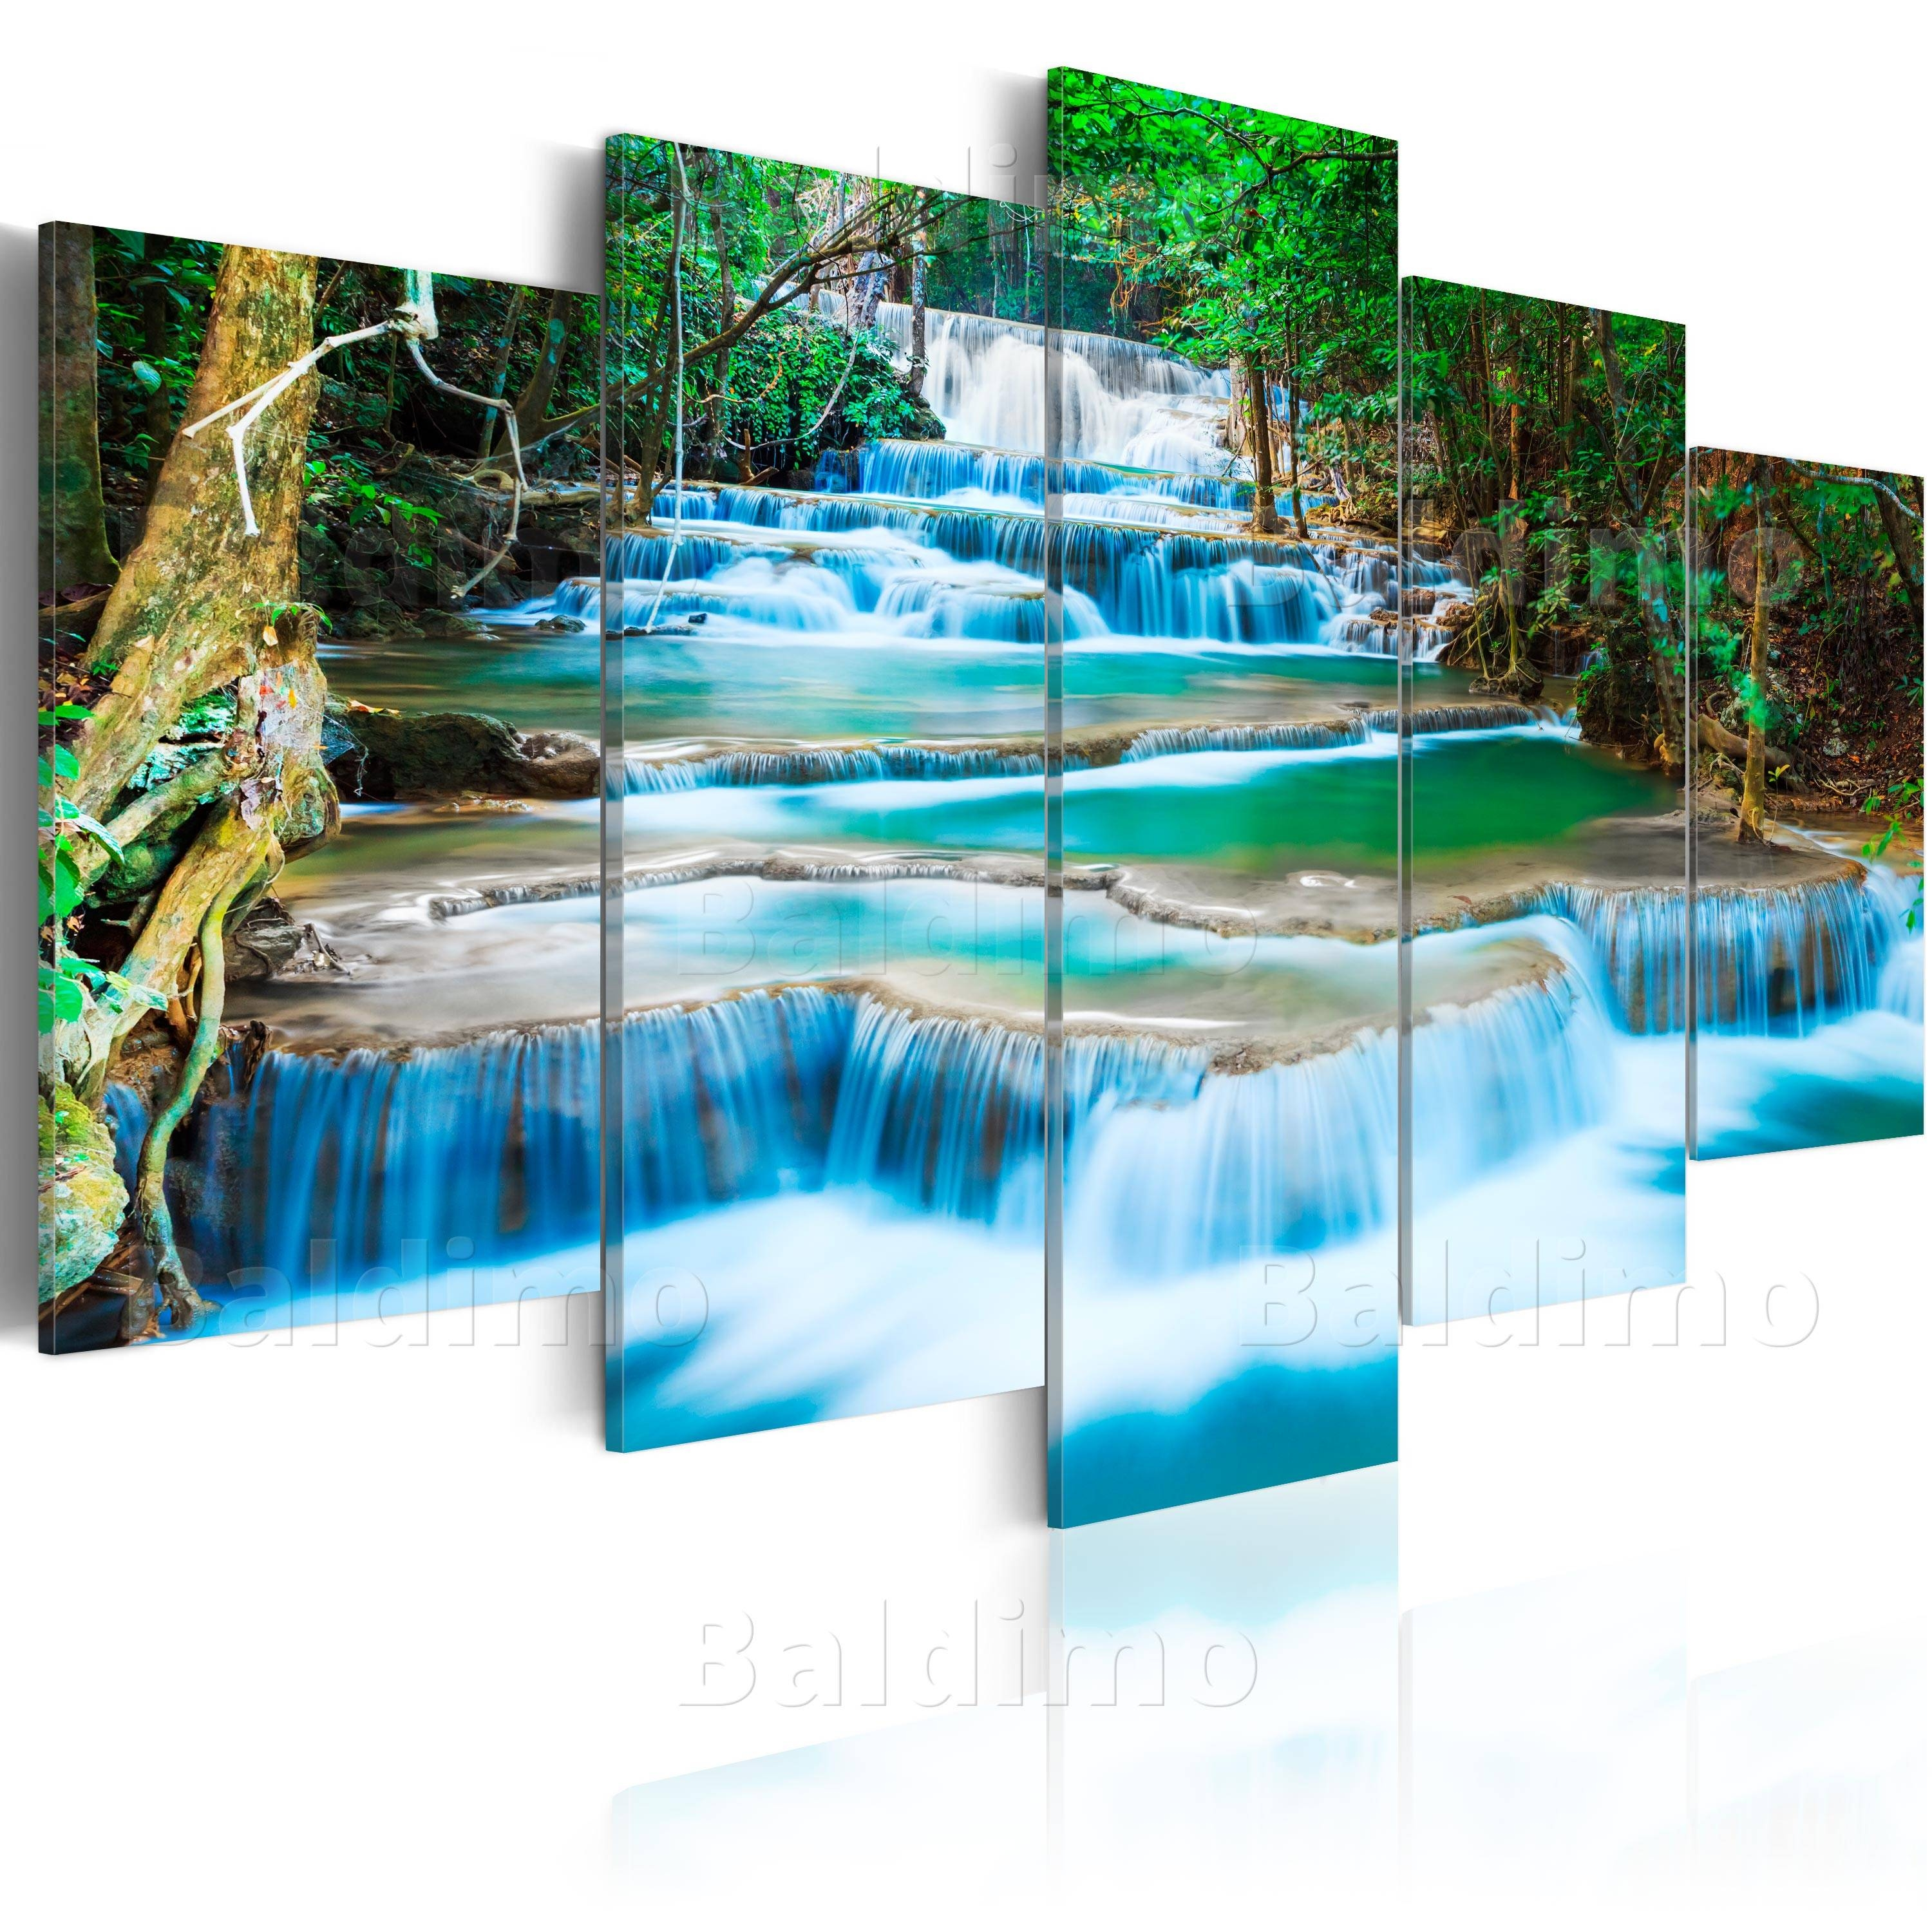 5Panels Large Buddha Waterfall Art Print Picture Canvas Wall Art Within Most Up To Date Waterfall Wall Art (View 6 of 20)